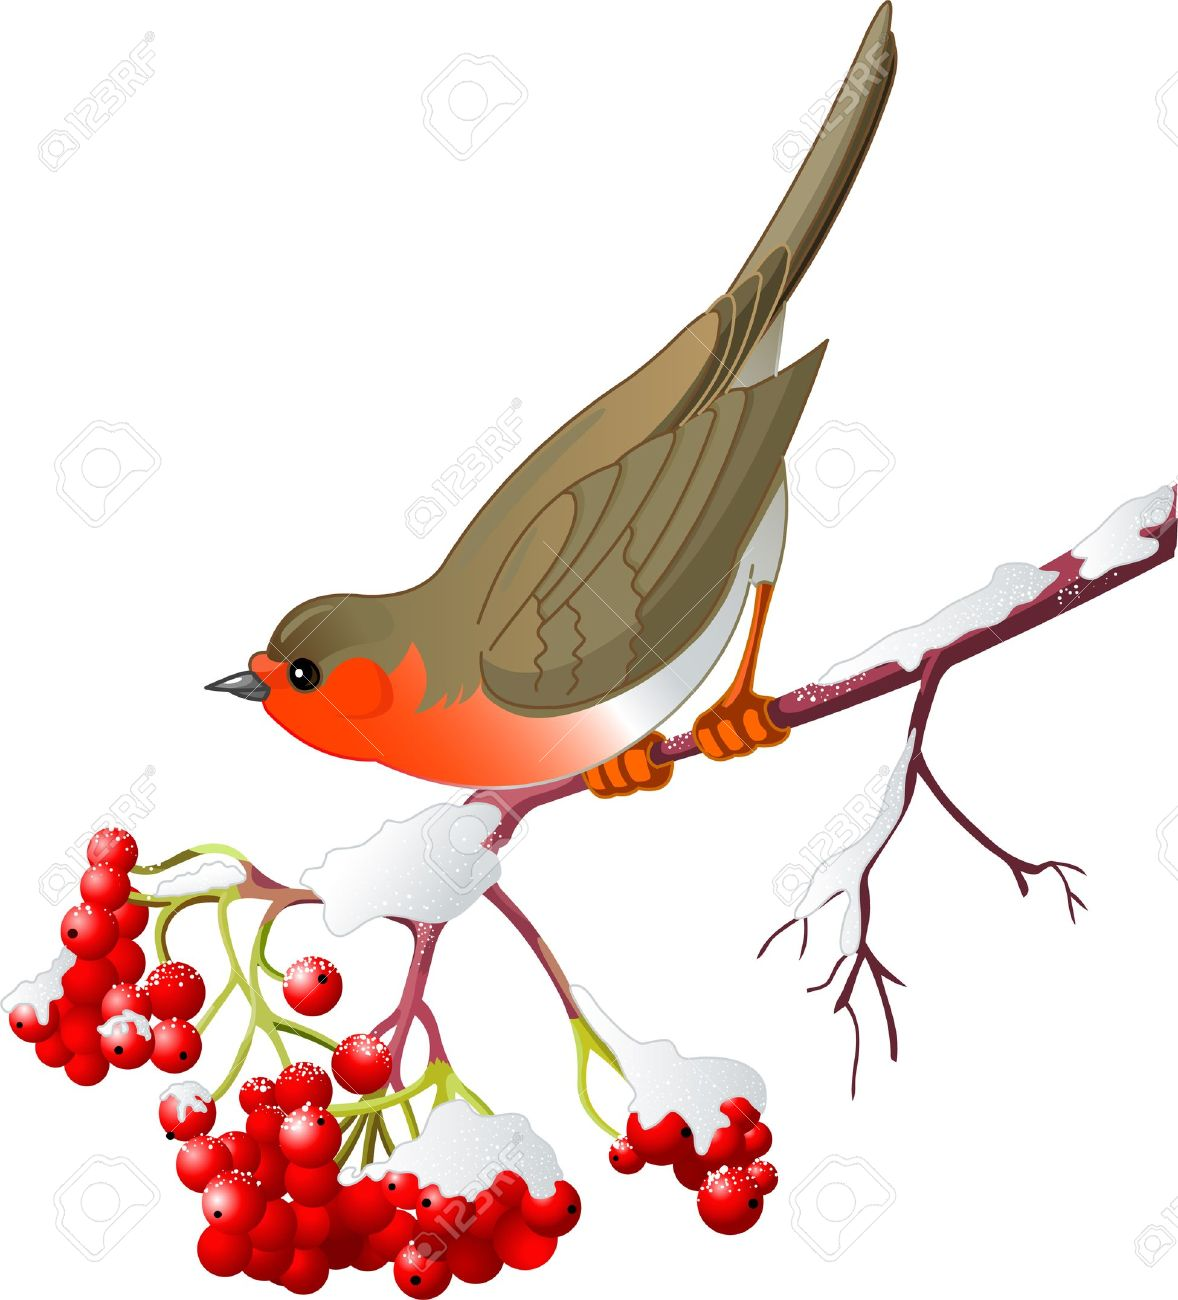 Cute Robin Sitting On Mountain Ash Branch. Isolated On White.